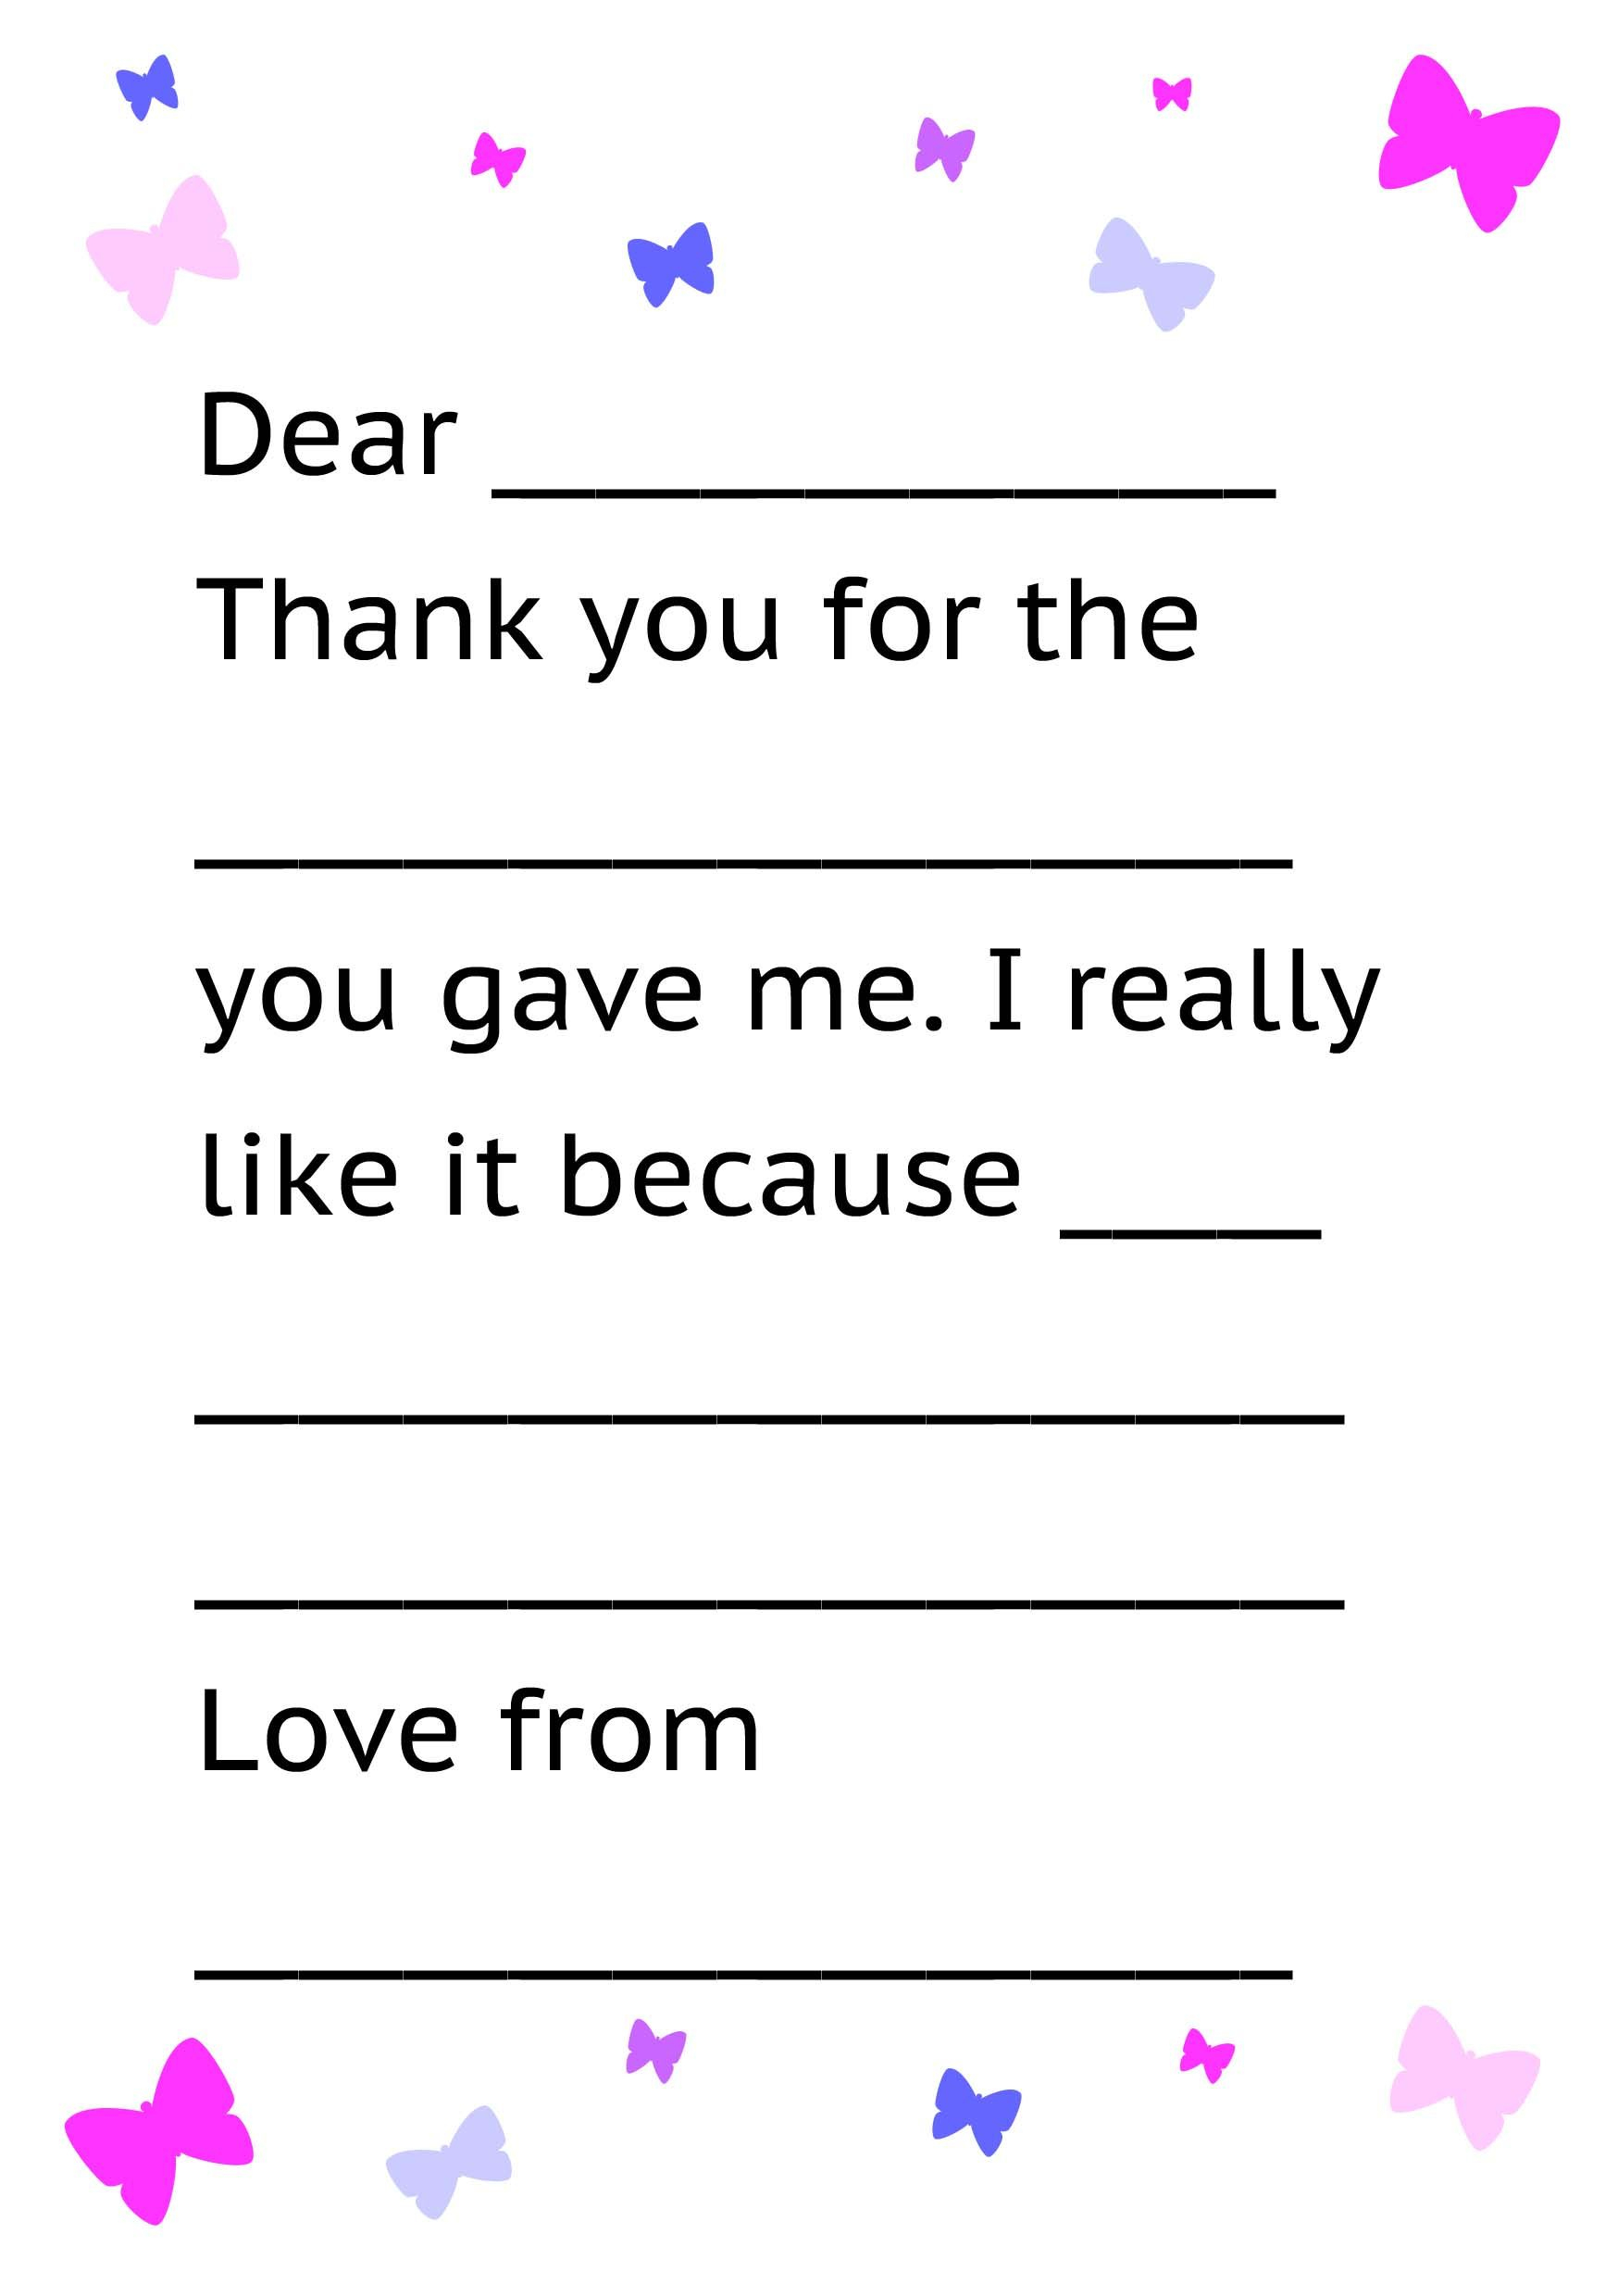 Printable Thank You Card Template For Kids | Kids Thank Yous - Free Printable Letter Writing Templates